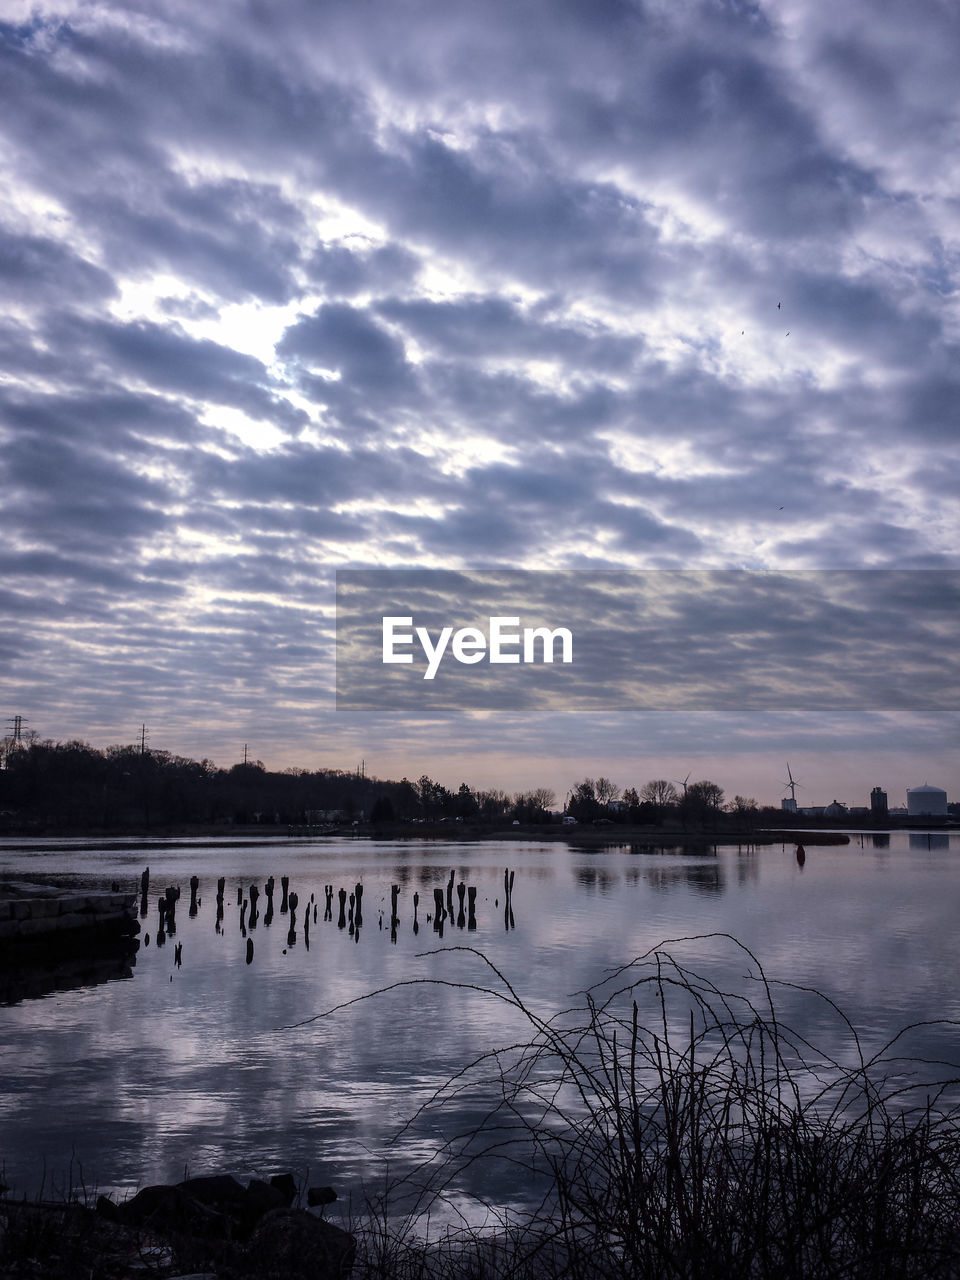 water, lake, sky, nature, beauty in nature, cloud - sky, tranquil scene, scenics, tranquility, outdoors, tree, no people, day, bird, swan